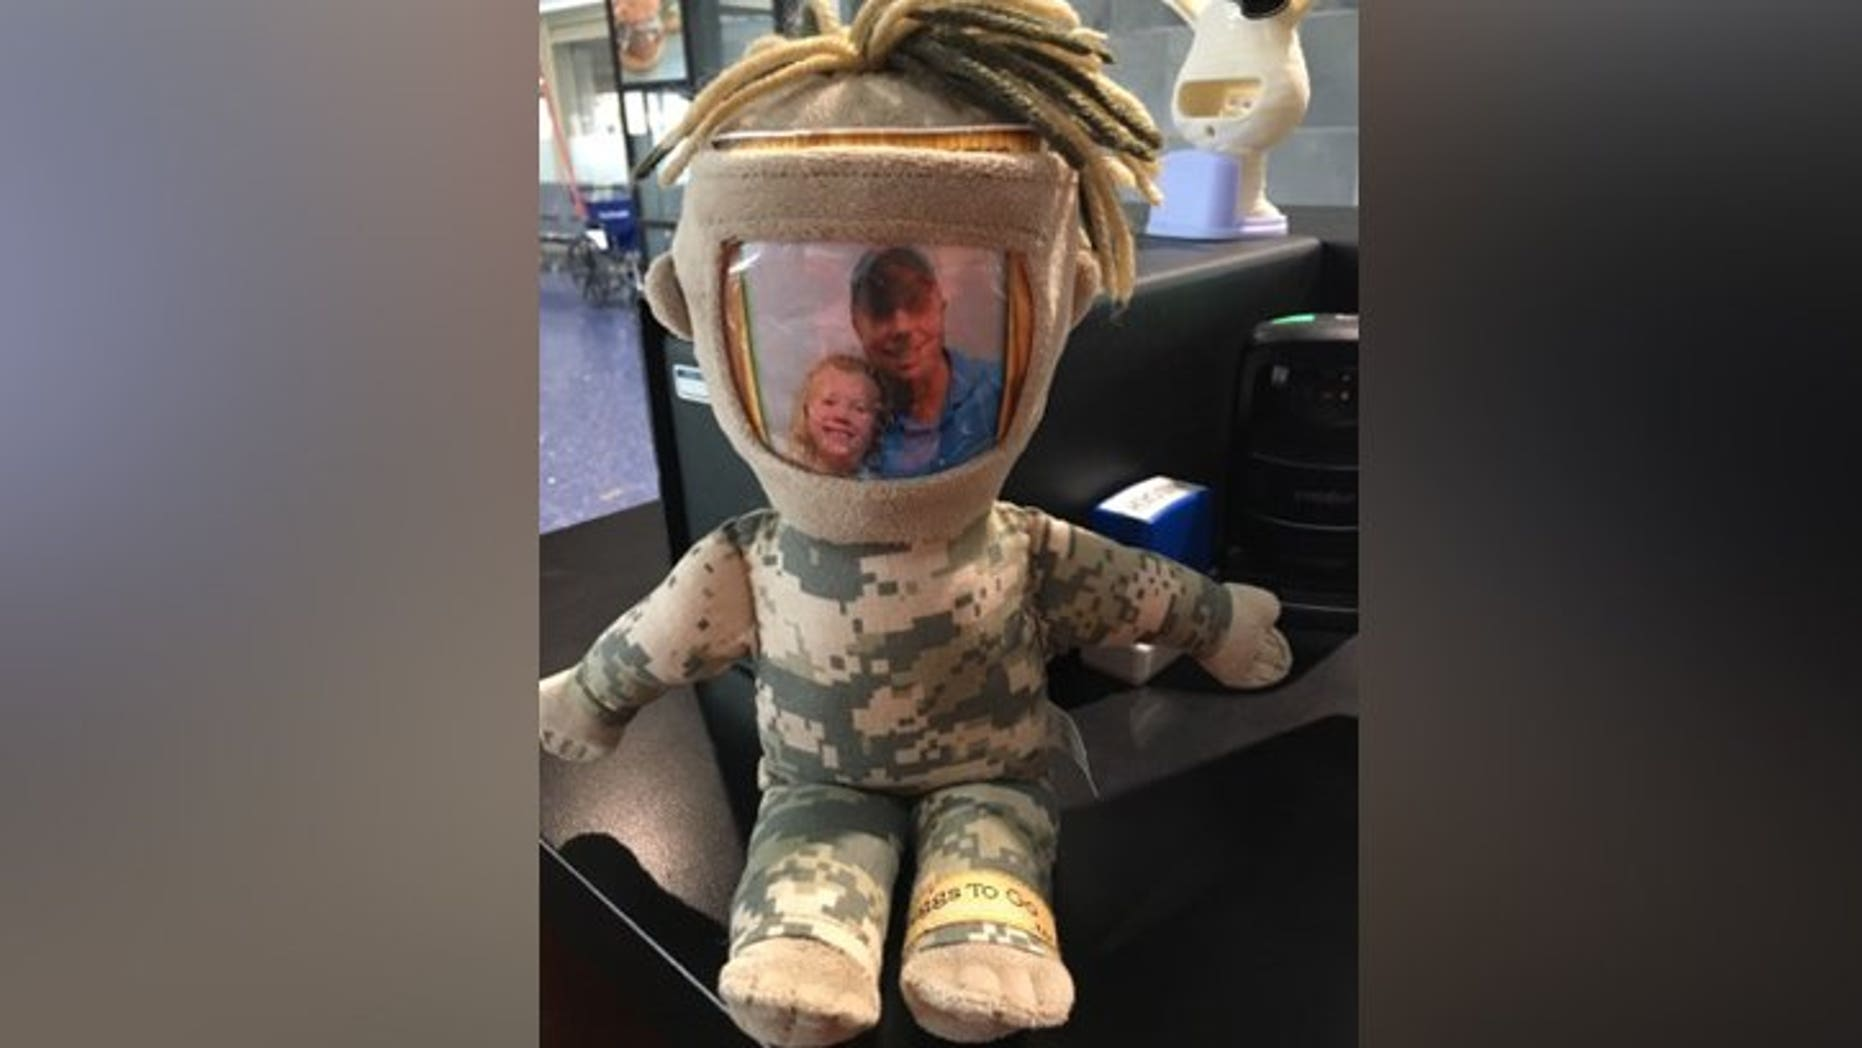 One Kansas youngster was thrilled to have her lost toy returned to her at Kansas City International Airport, thanks to the help of two vigilant women and a now-viral social media campaign.